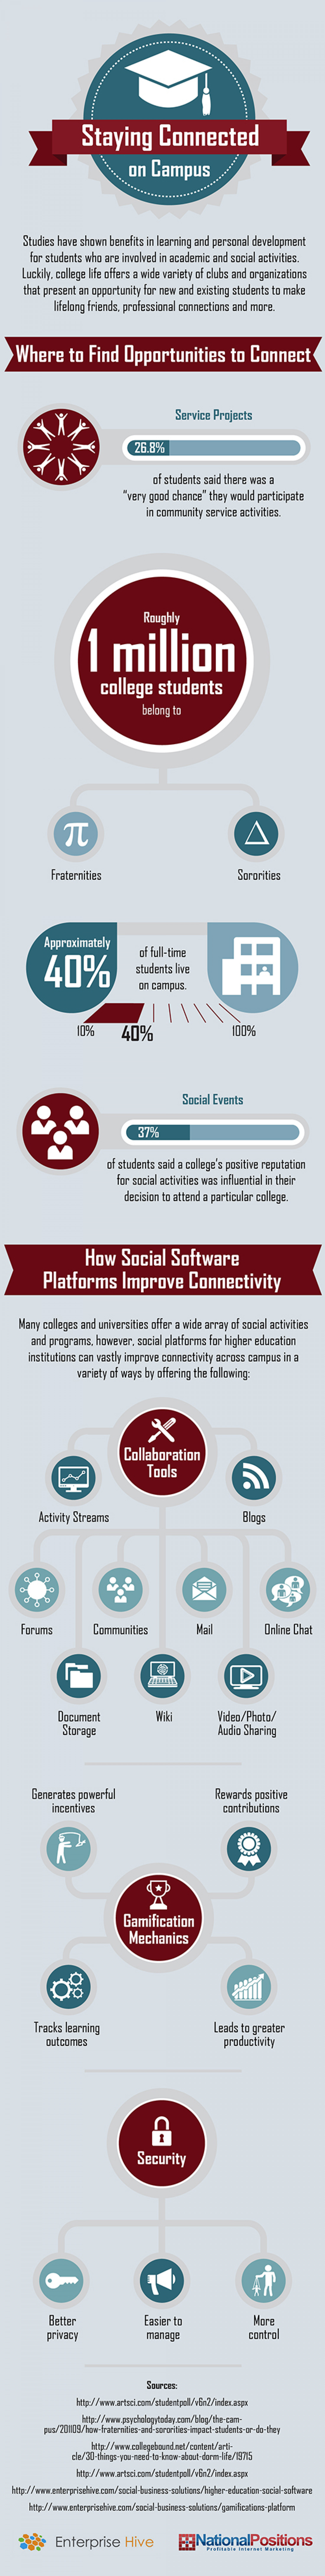 Staying Connected on Campus Infographic